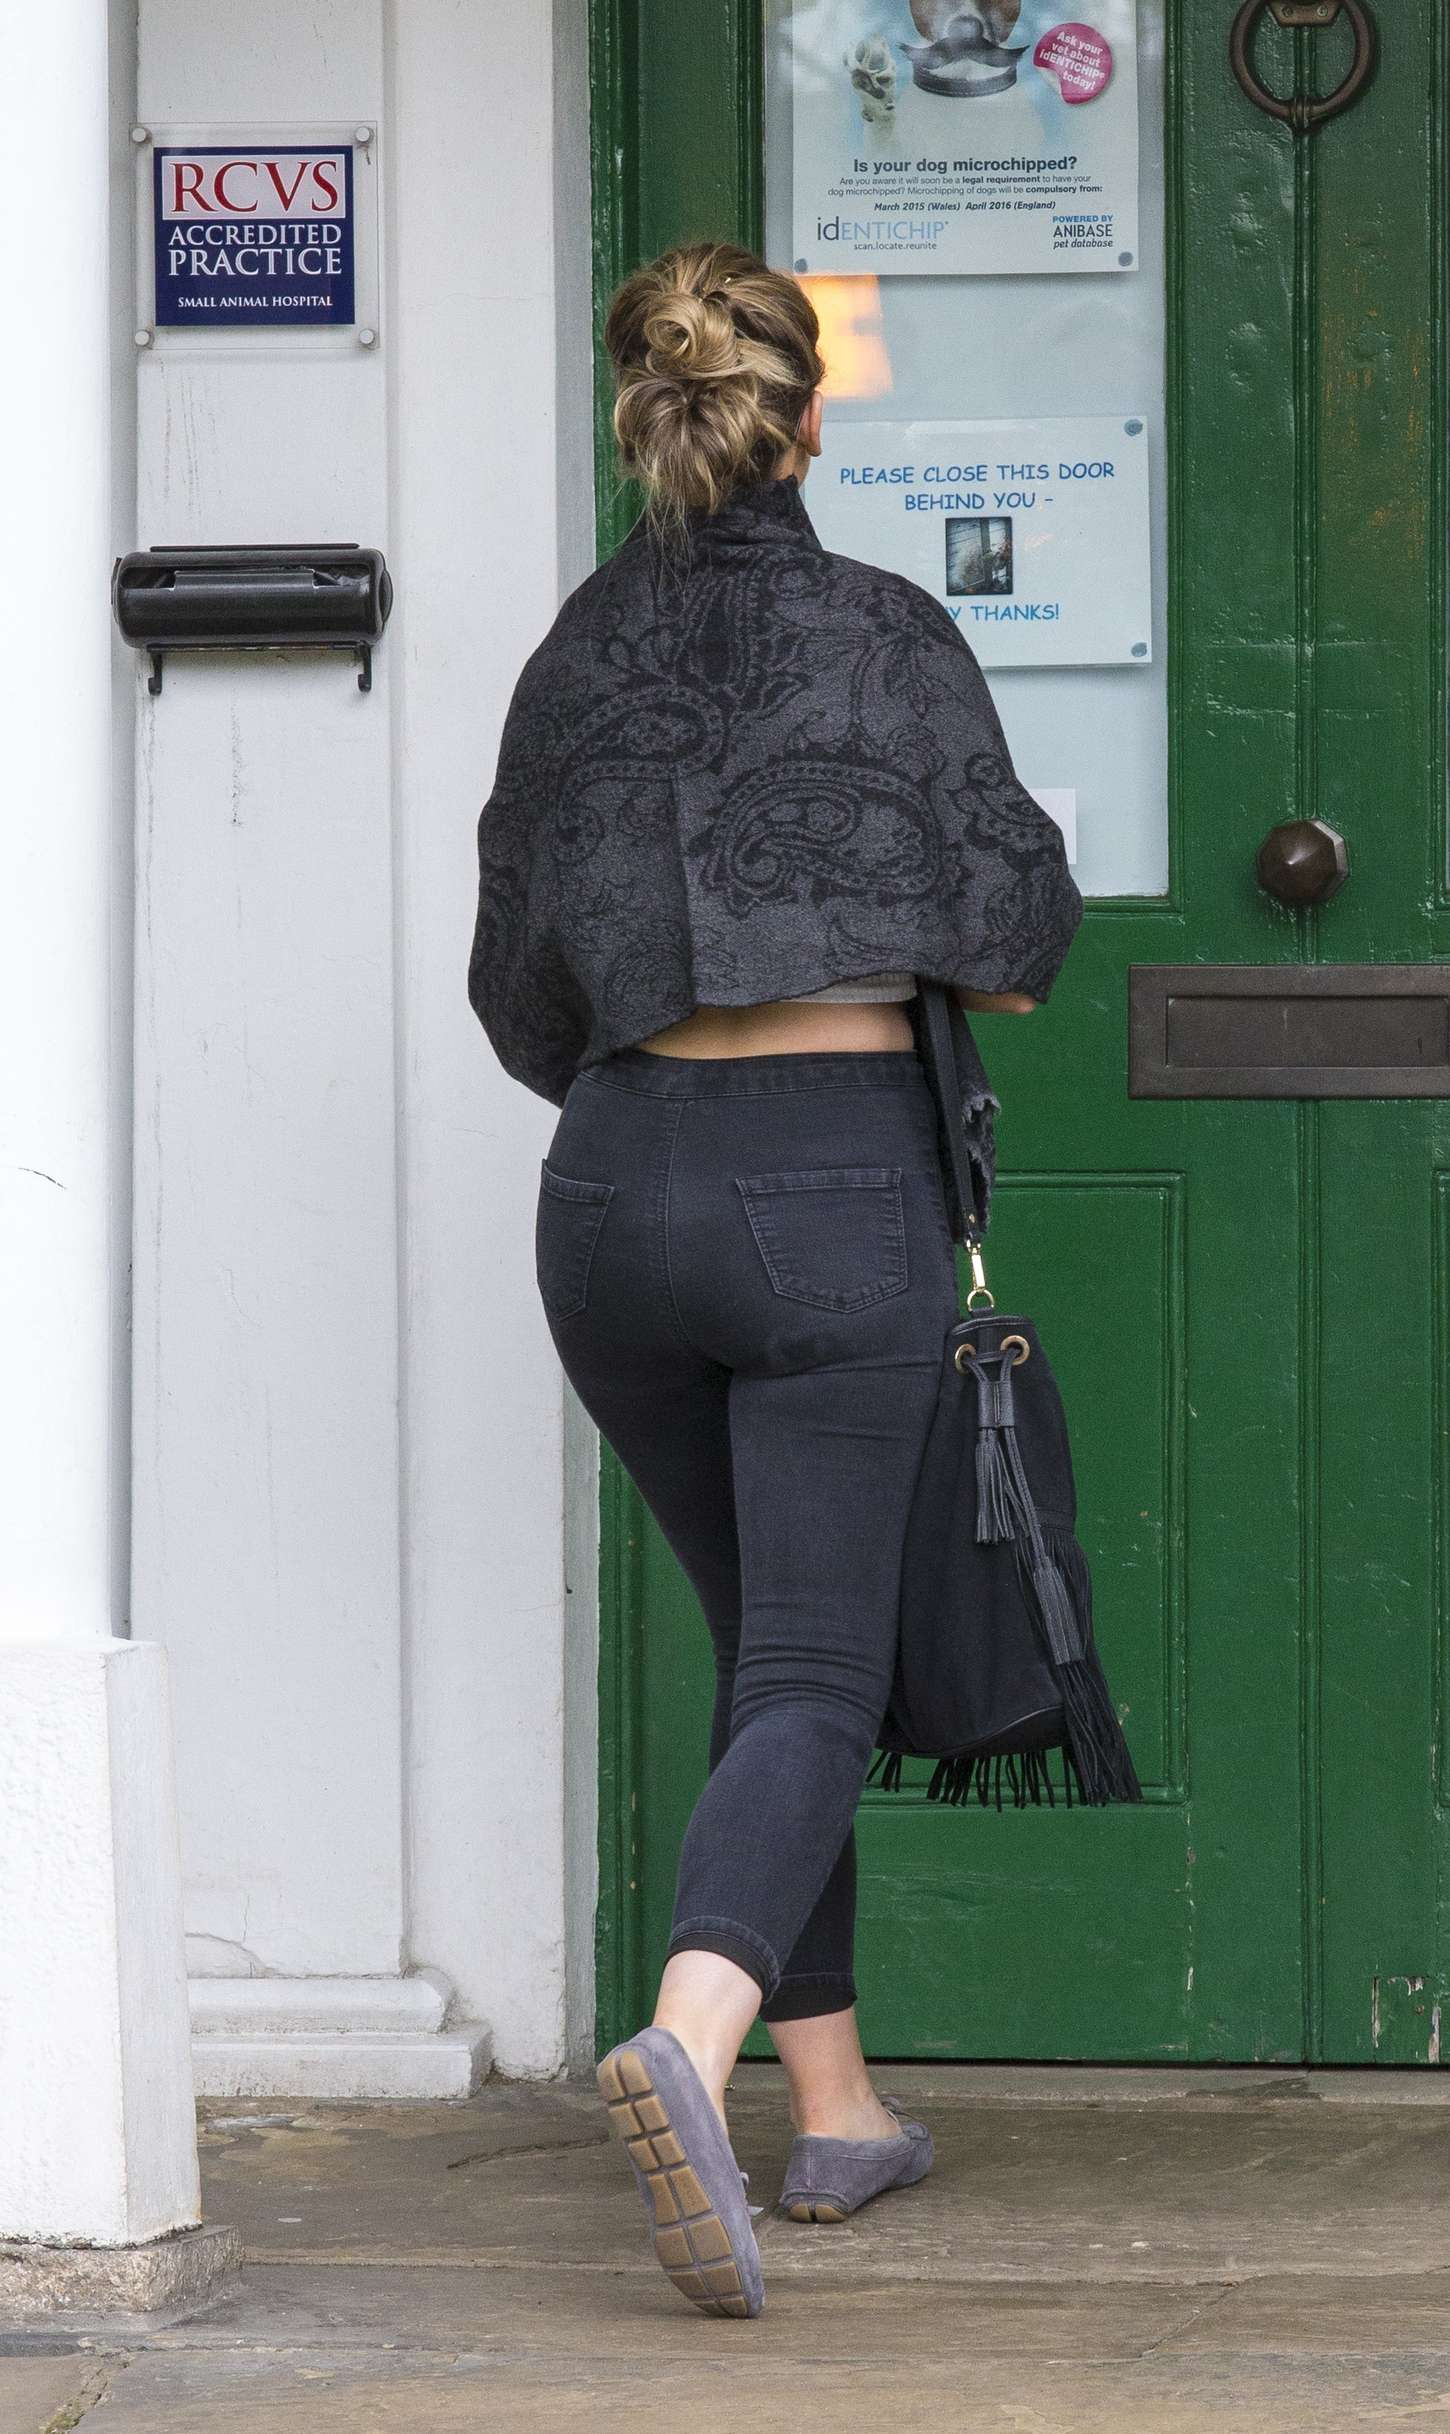 Booty Perrie Edwards nude photos 2019